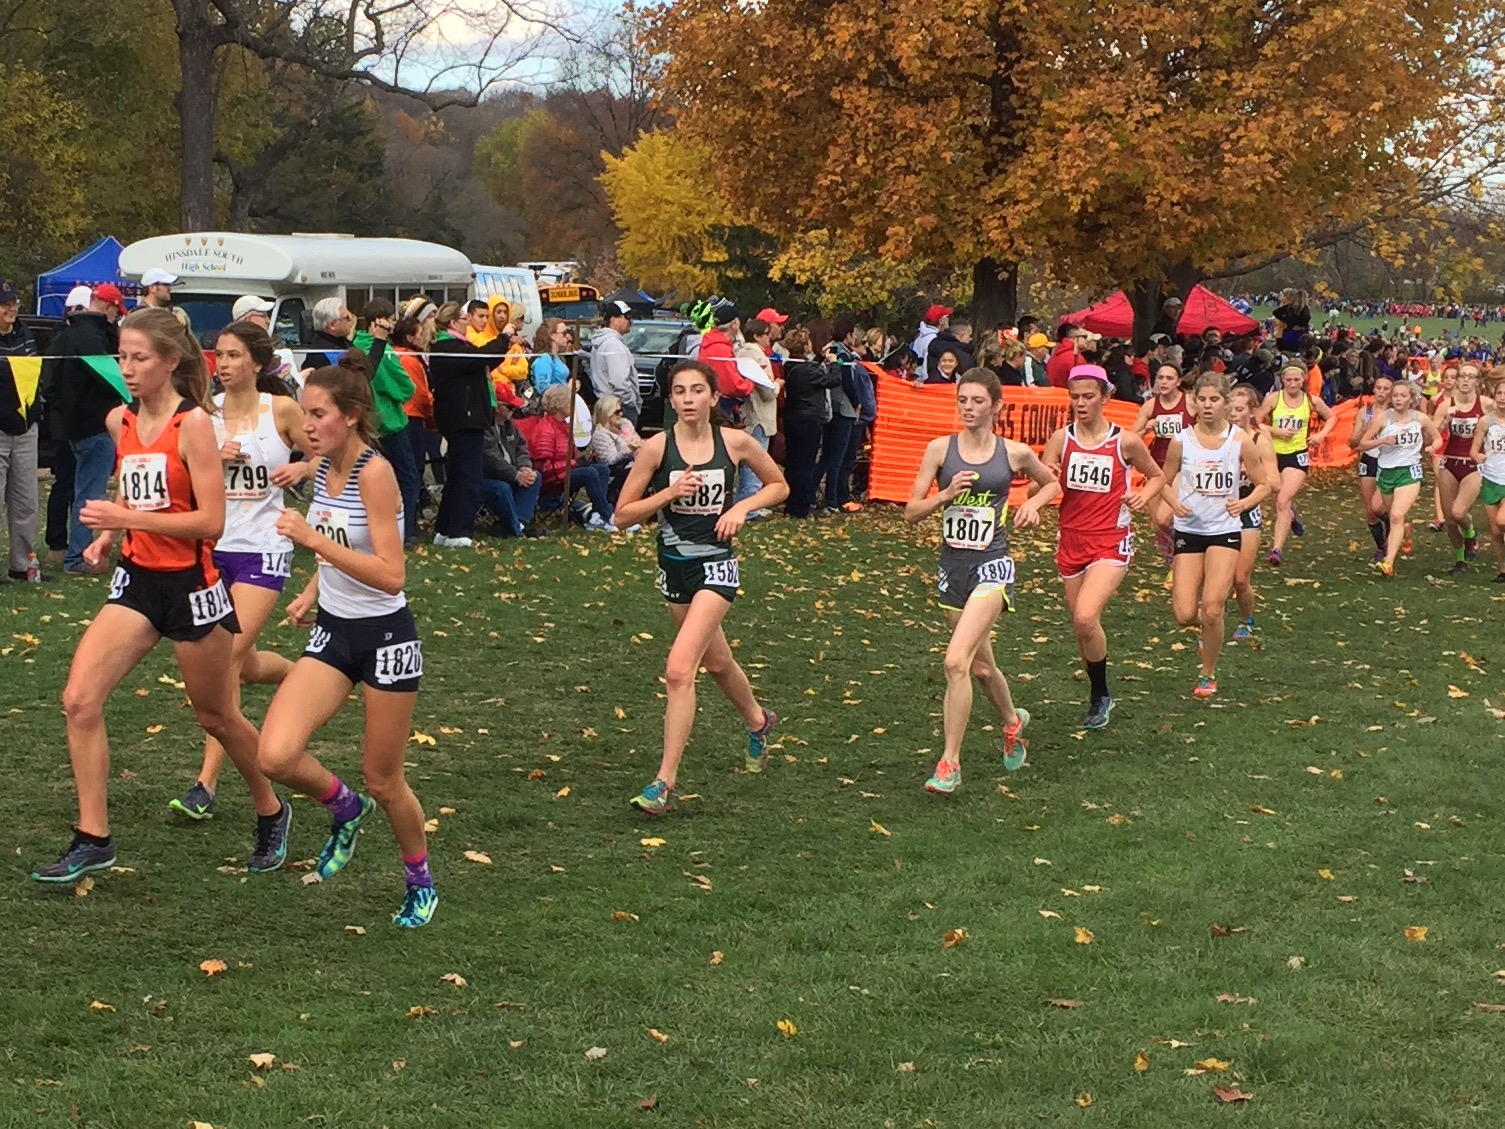 michigan state cross country meet 2015 results